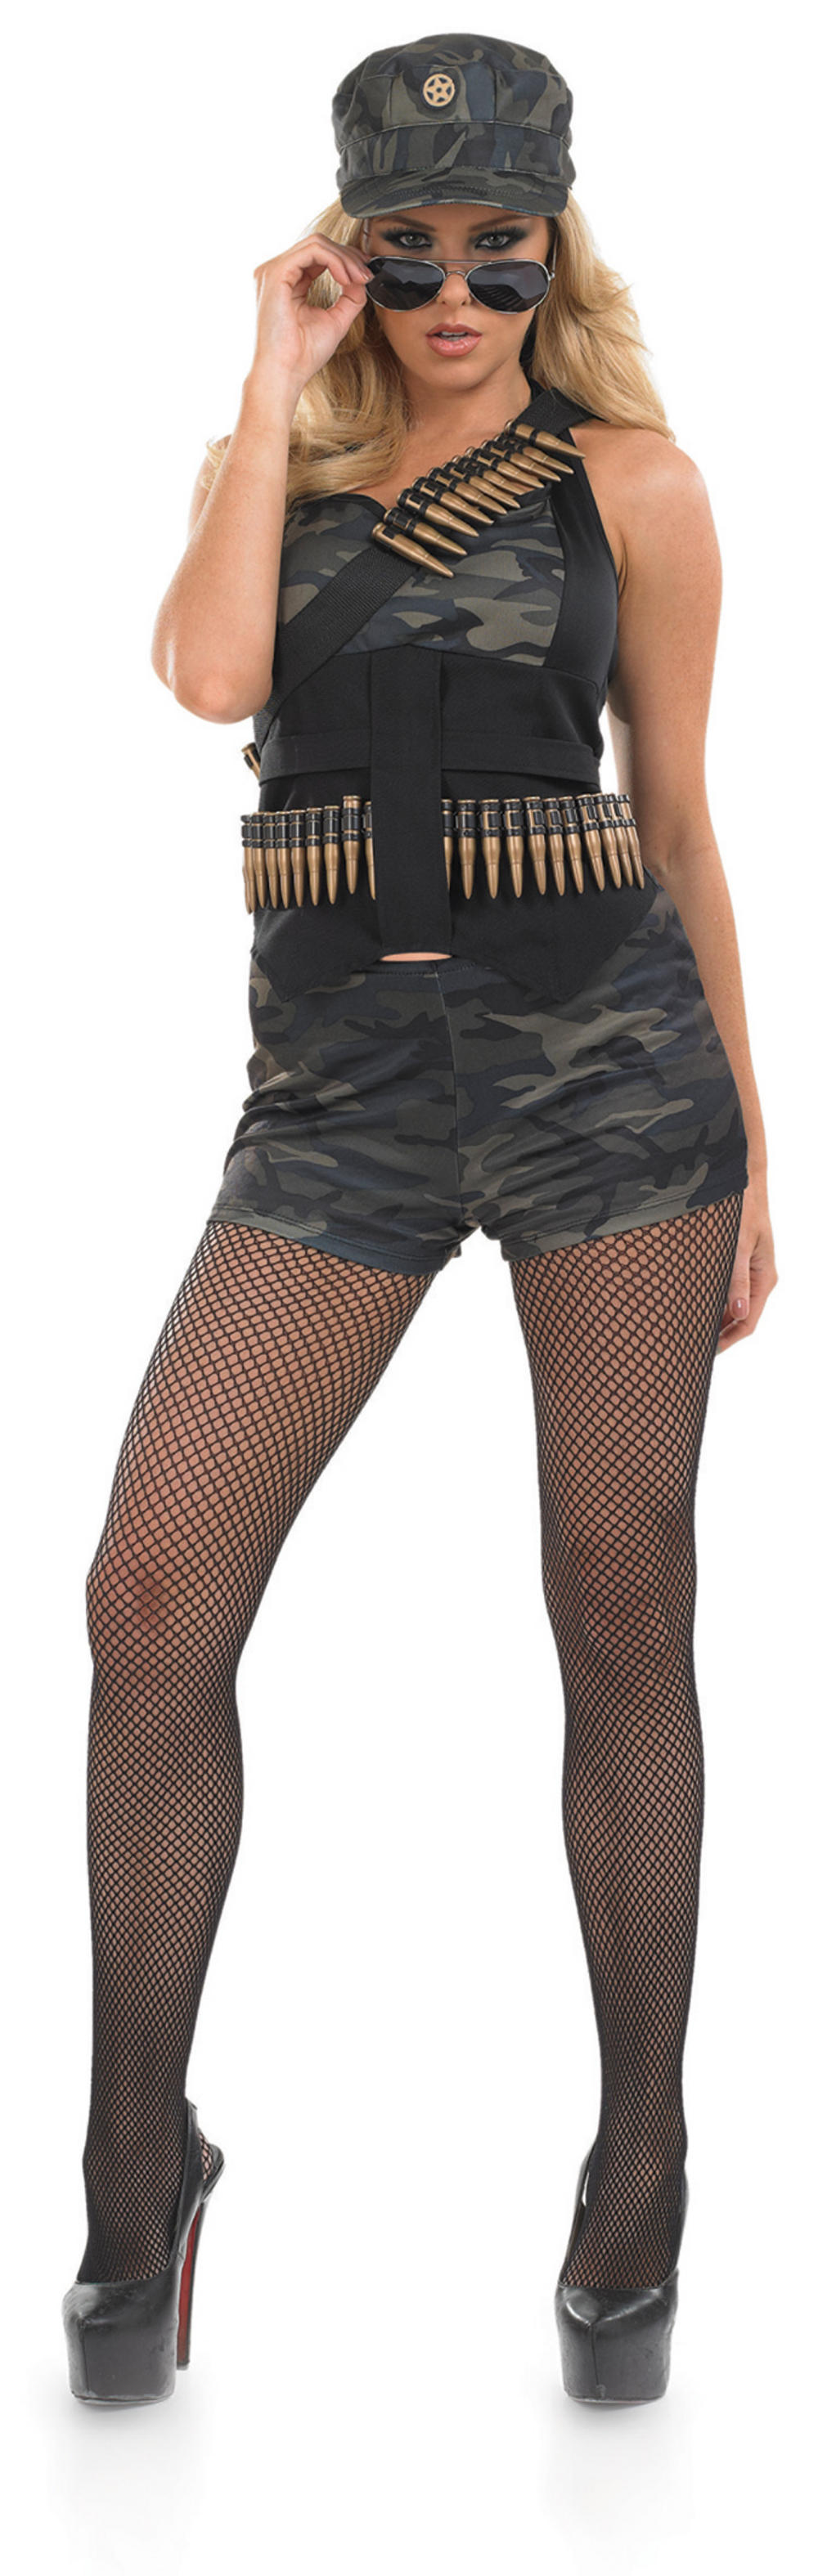 Hot Pants Hero Army Costume